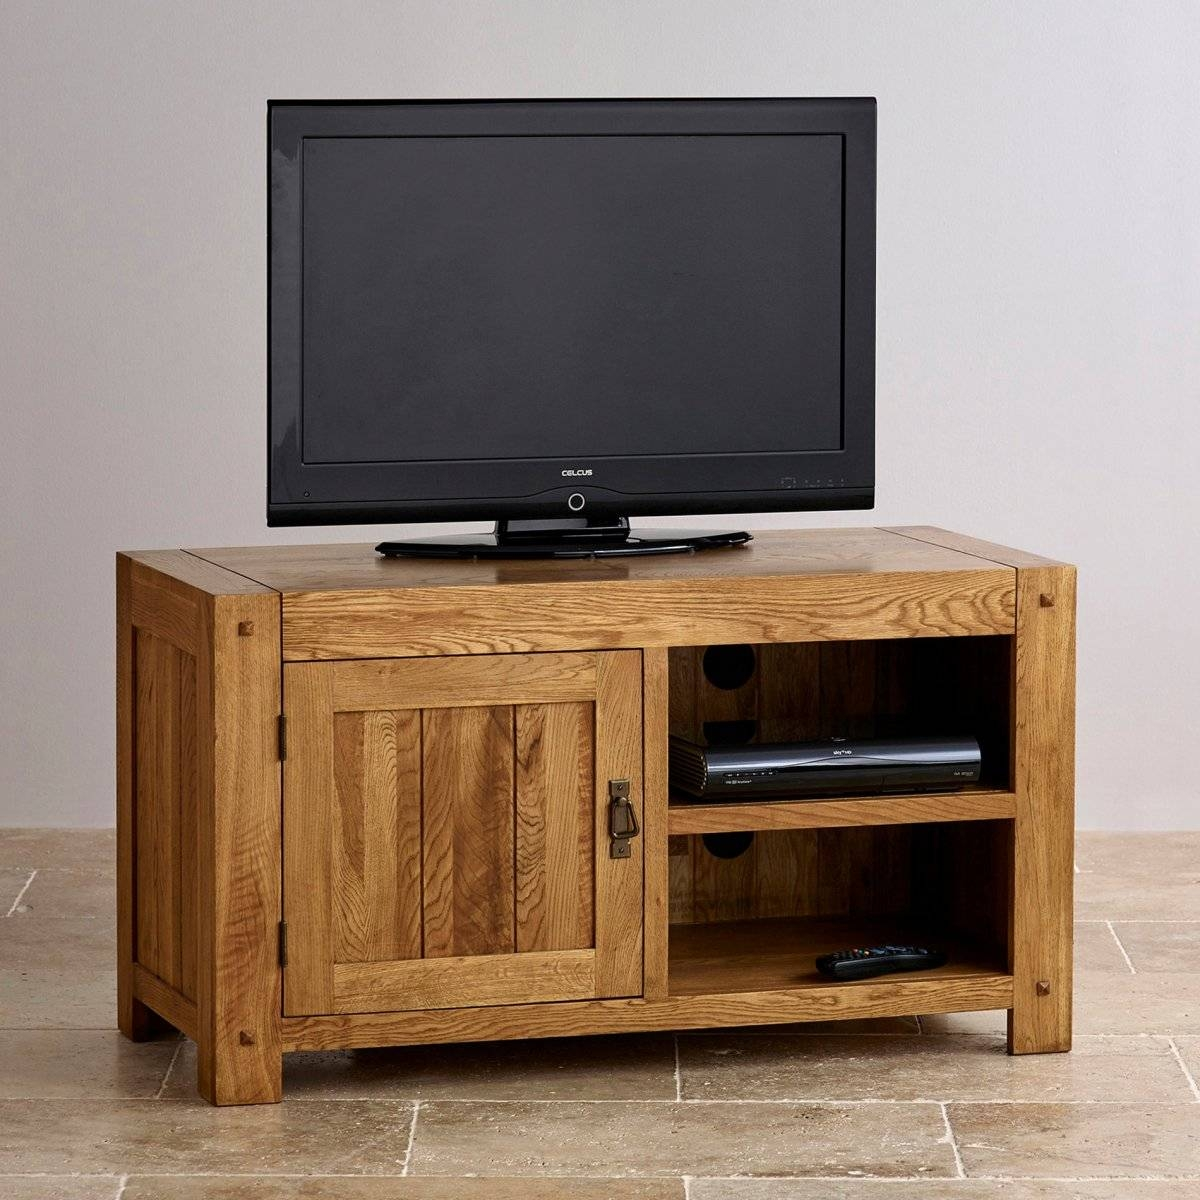 Quercus Tv Cabinet In Rustic Solid Oak | Oak Furniture Land throughout Small Tv Cabinets (Image 9 of 15)